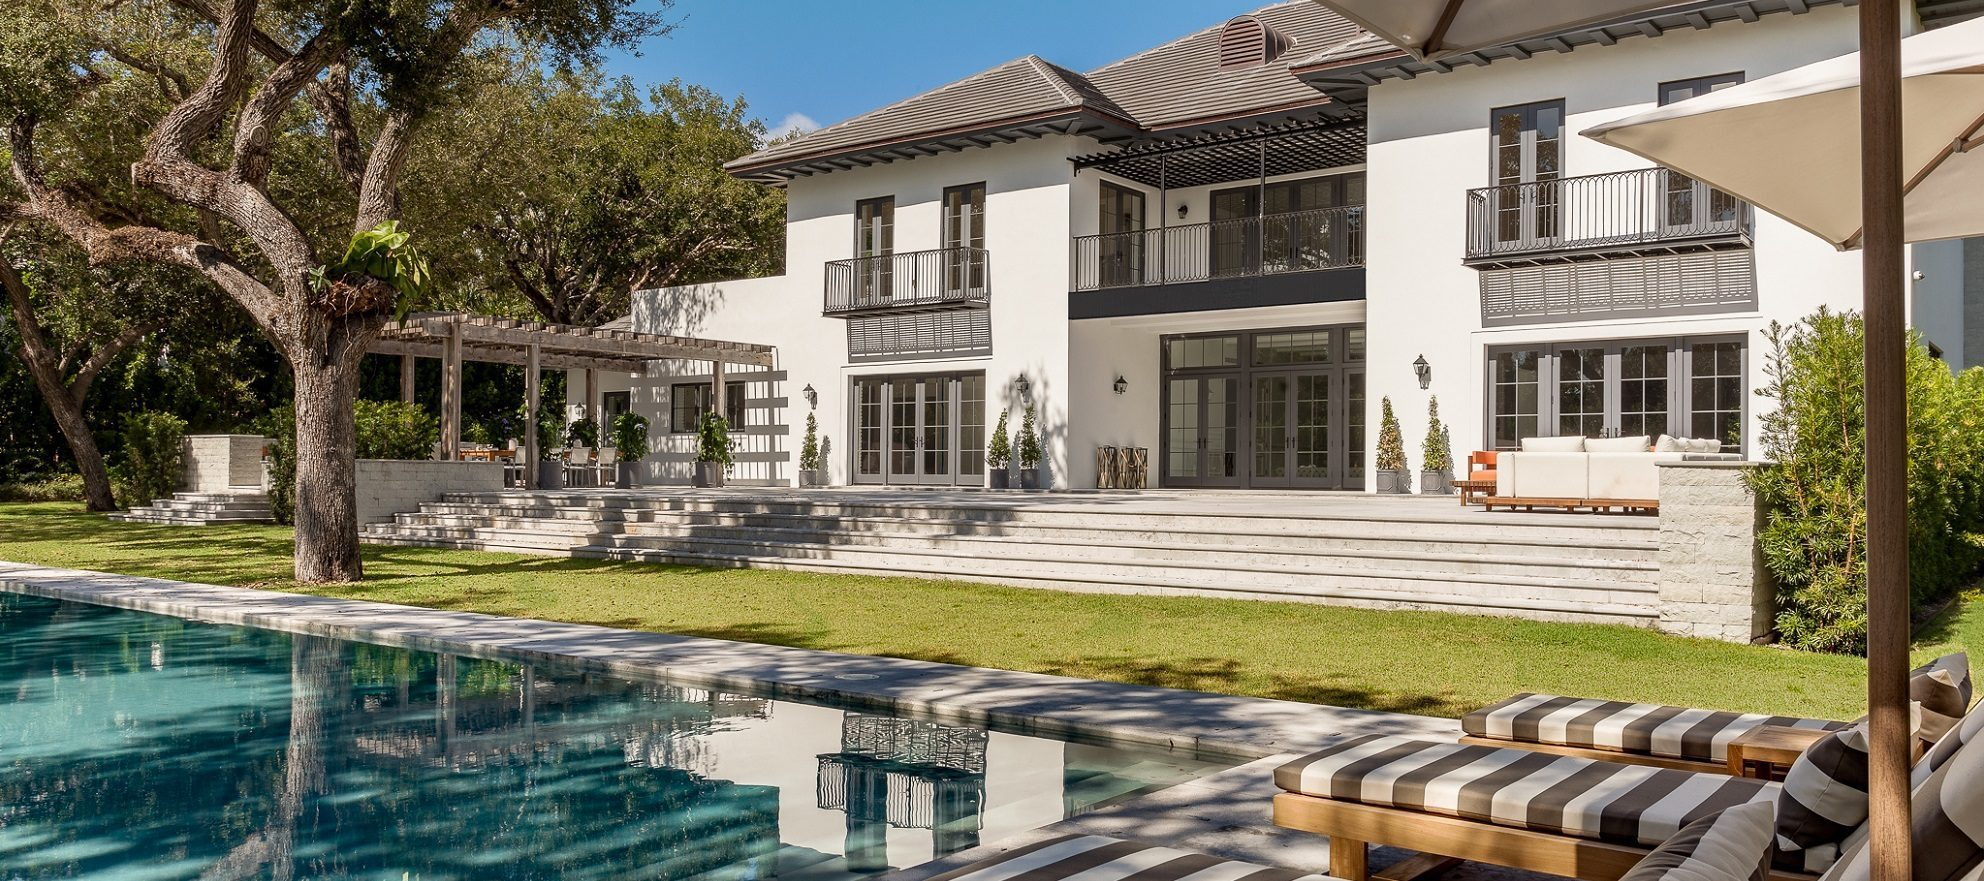 Luxury listing: meticulously designed inside and out